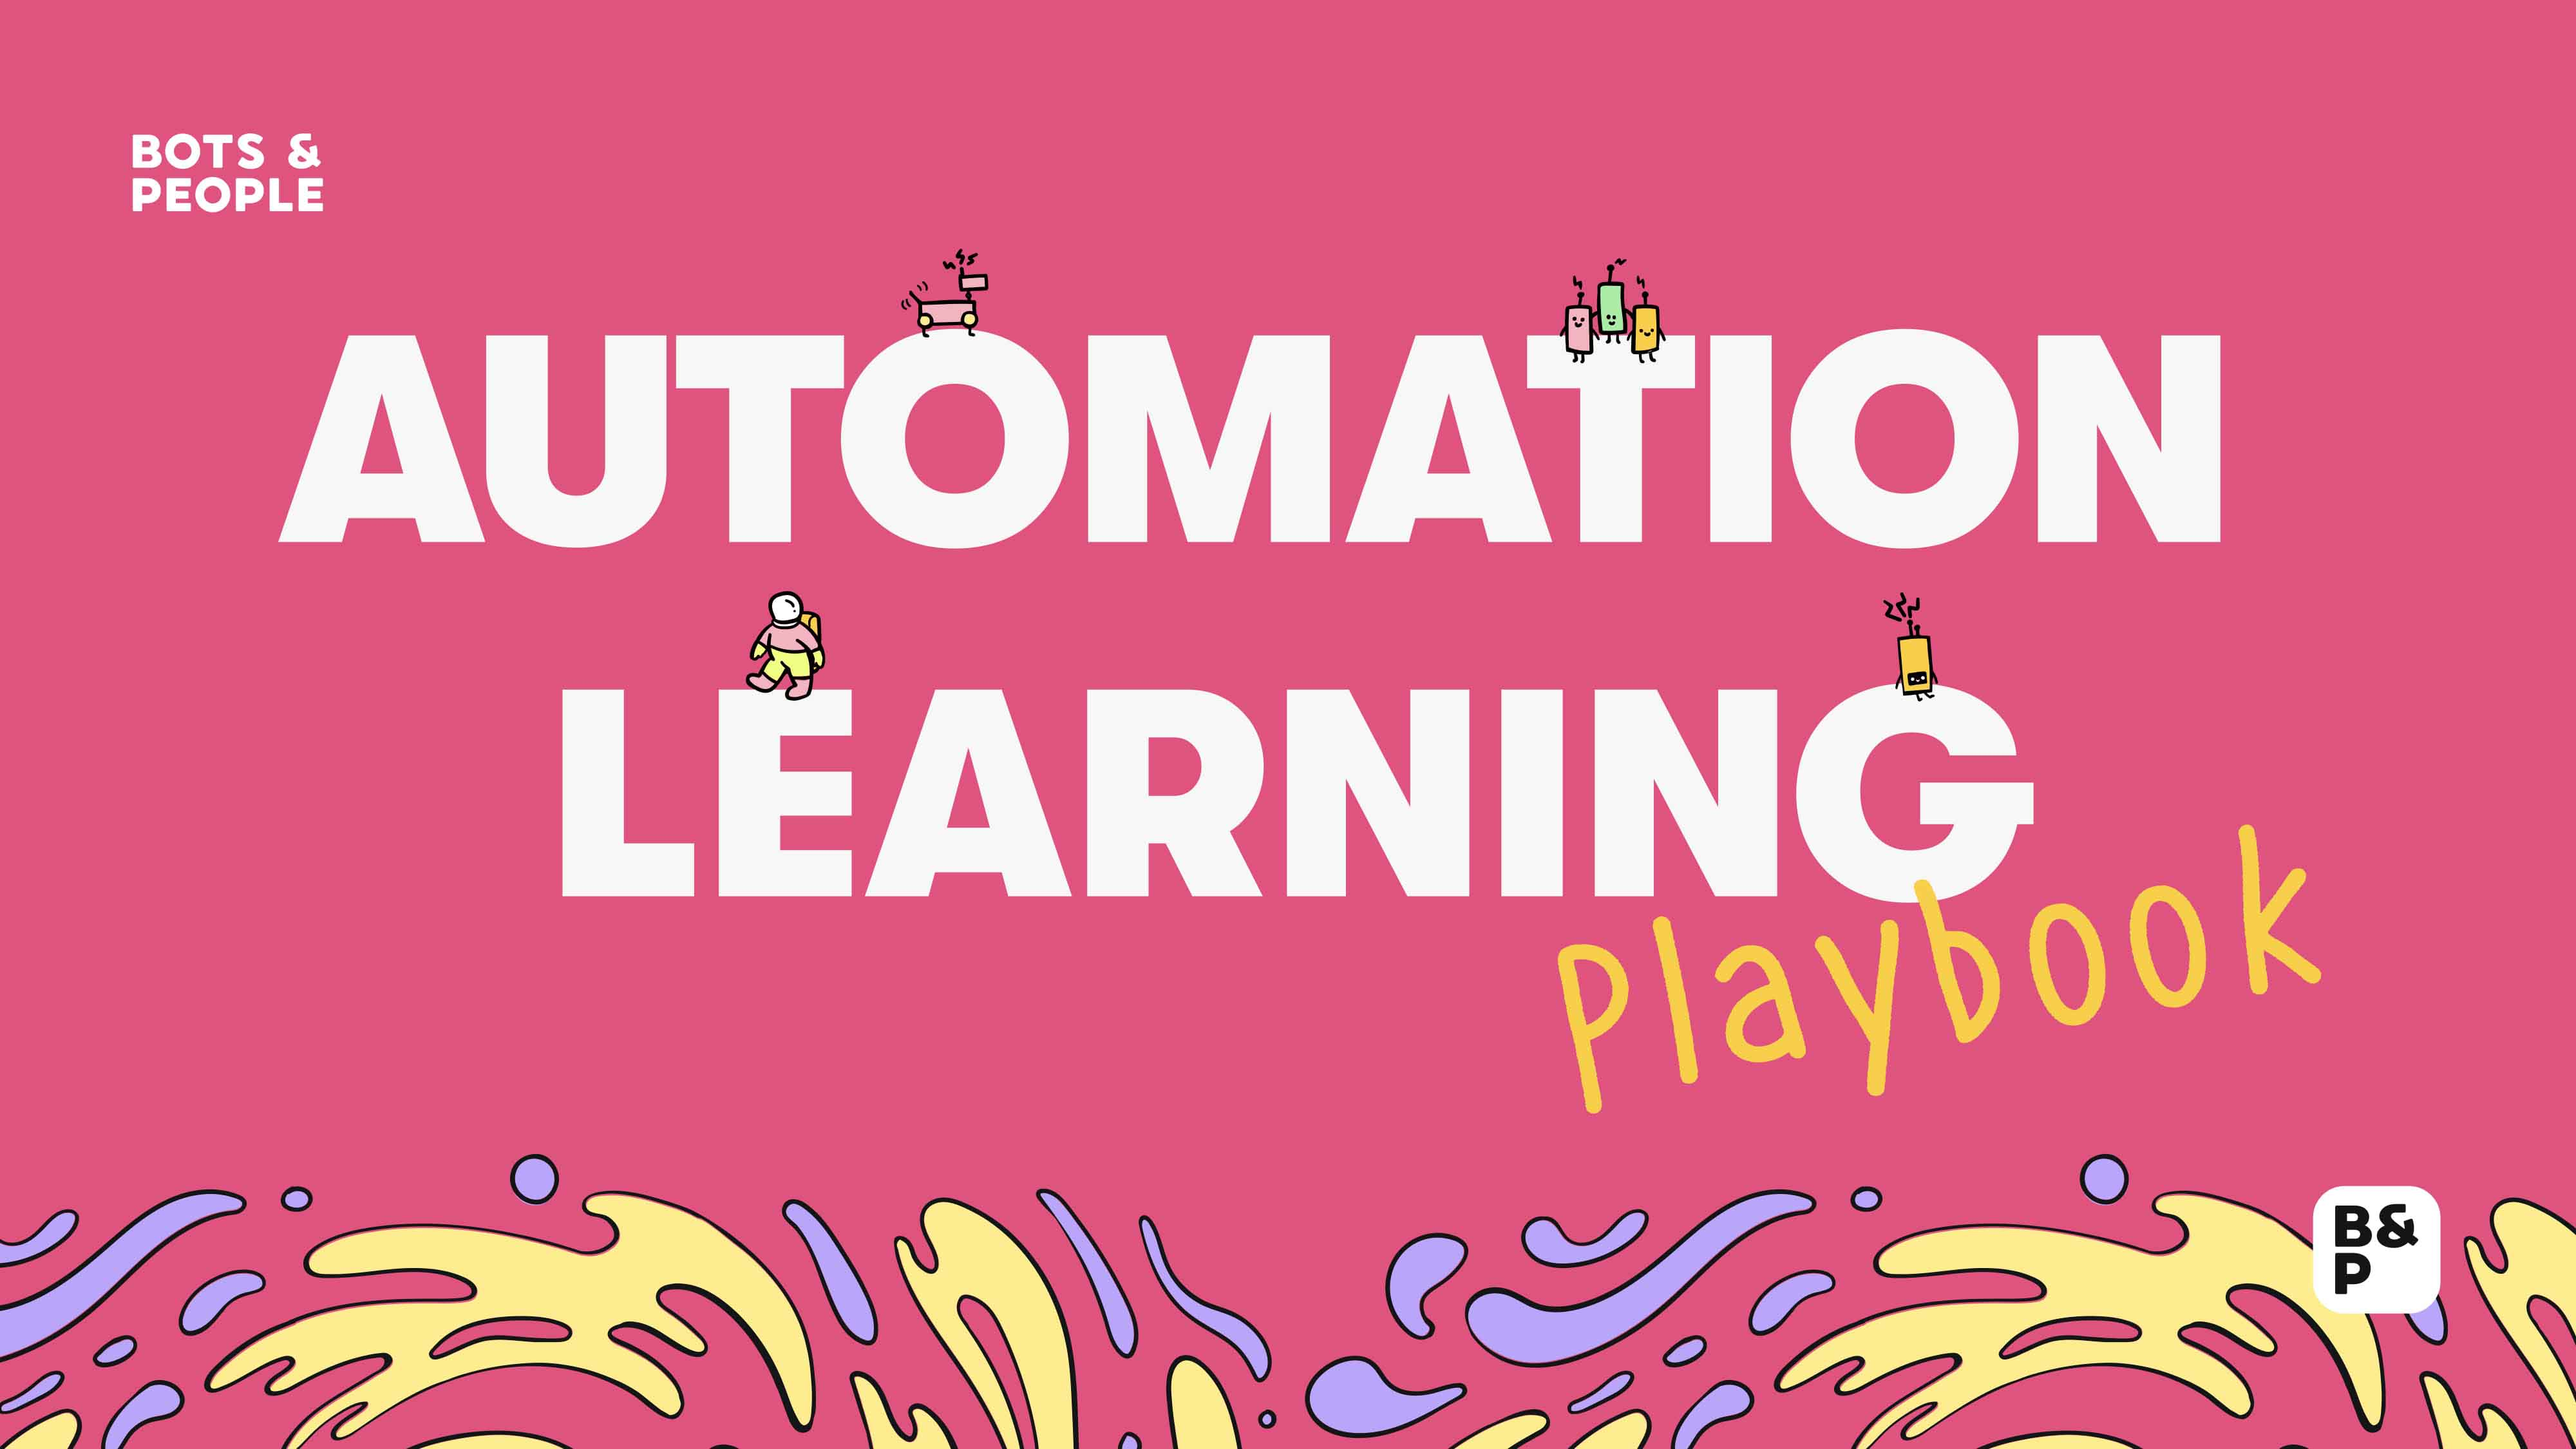 Automation learning Playbook